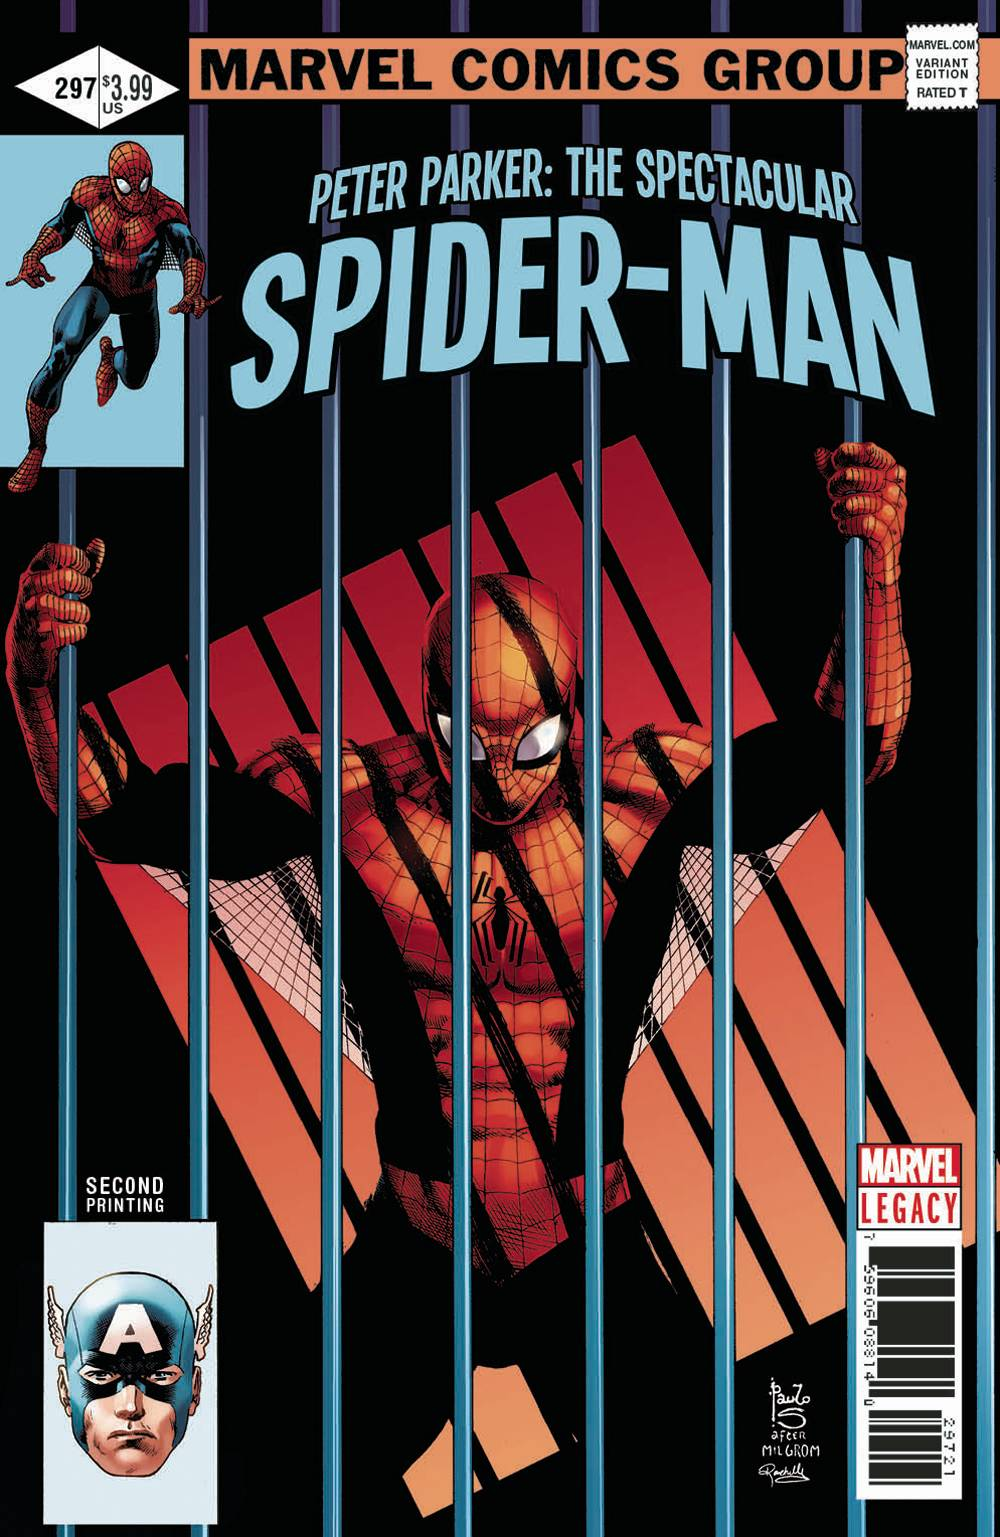 Peter Parker Spectacular Spider-Man